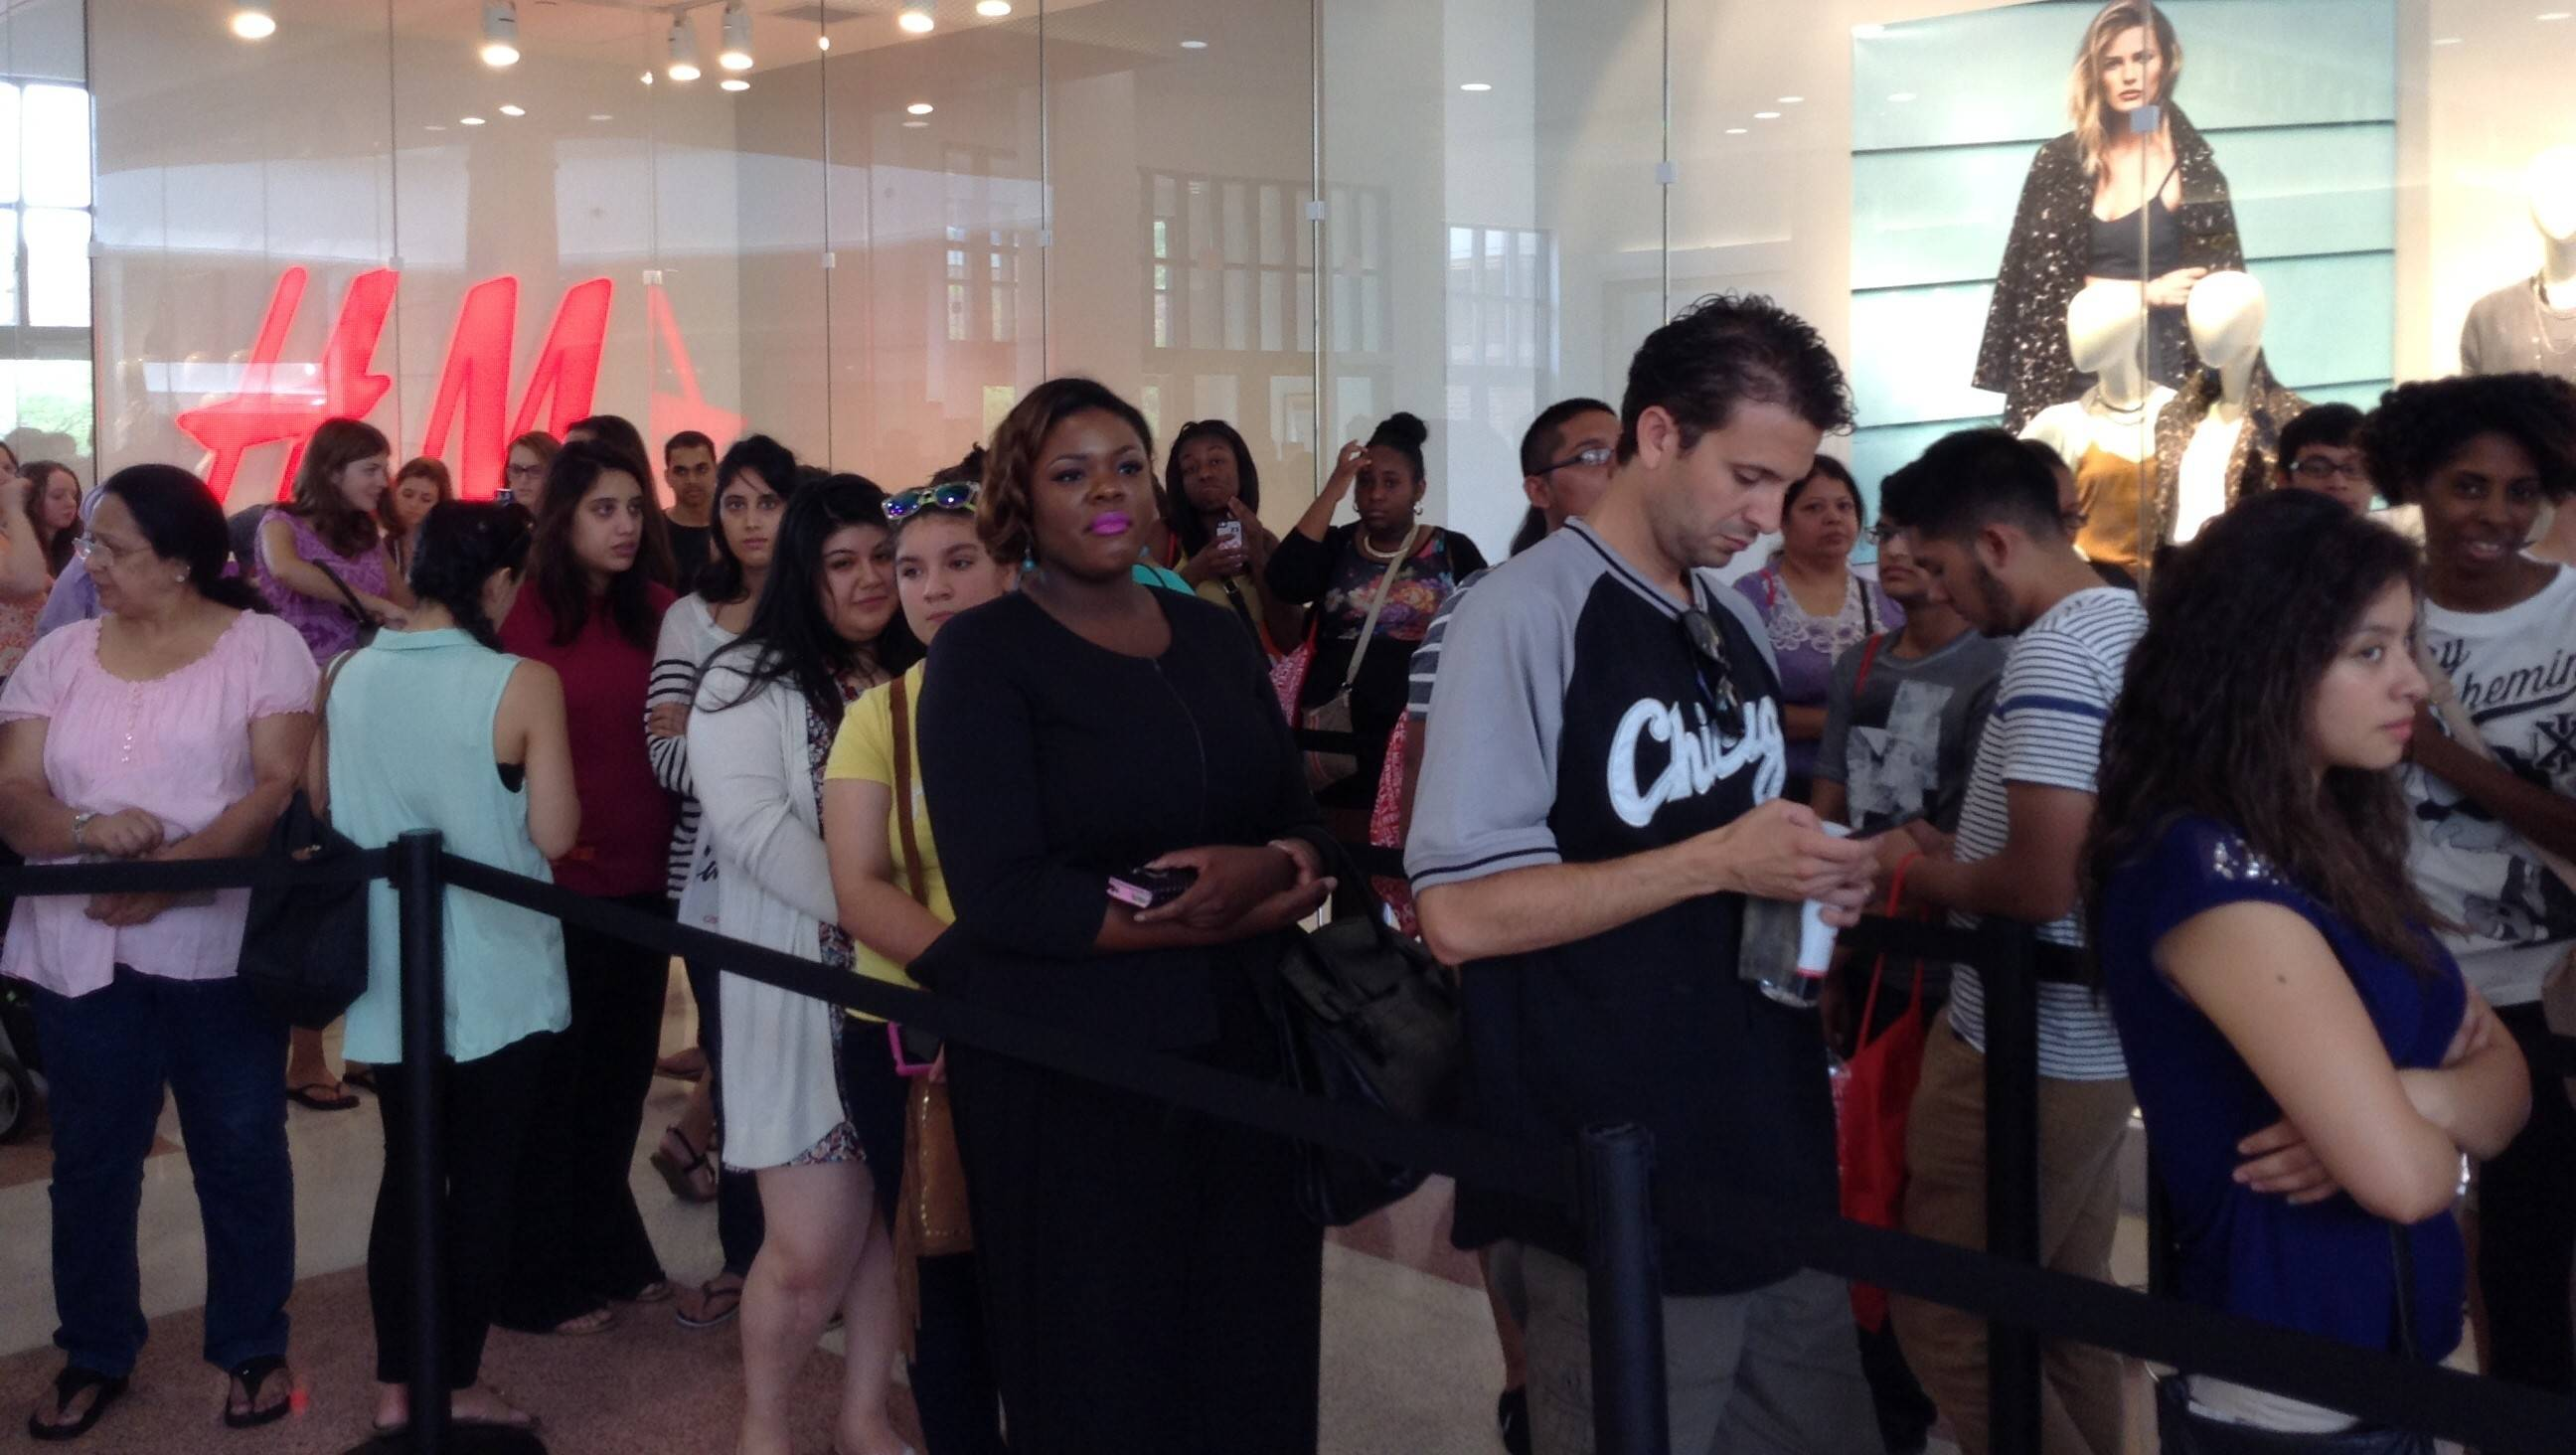 More than 150 customers stood in line outside the new H&M at Lombard's Yorktown Center Thursday morning to celebrate the store's grand opening and receive giveaways.